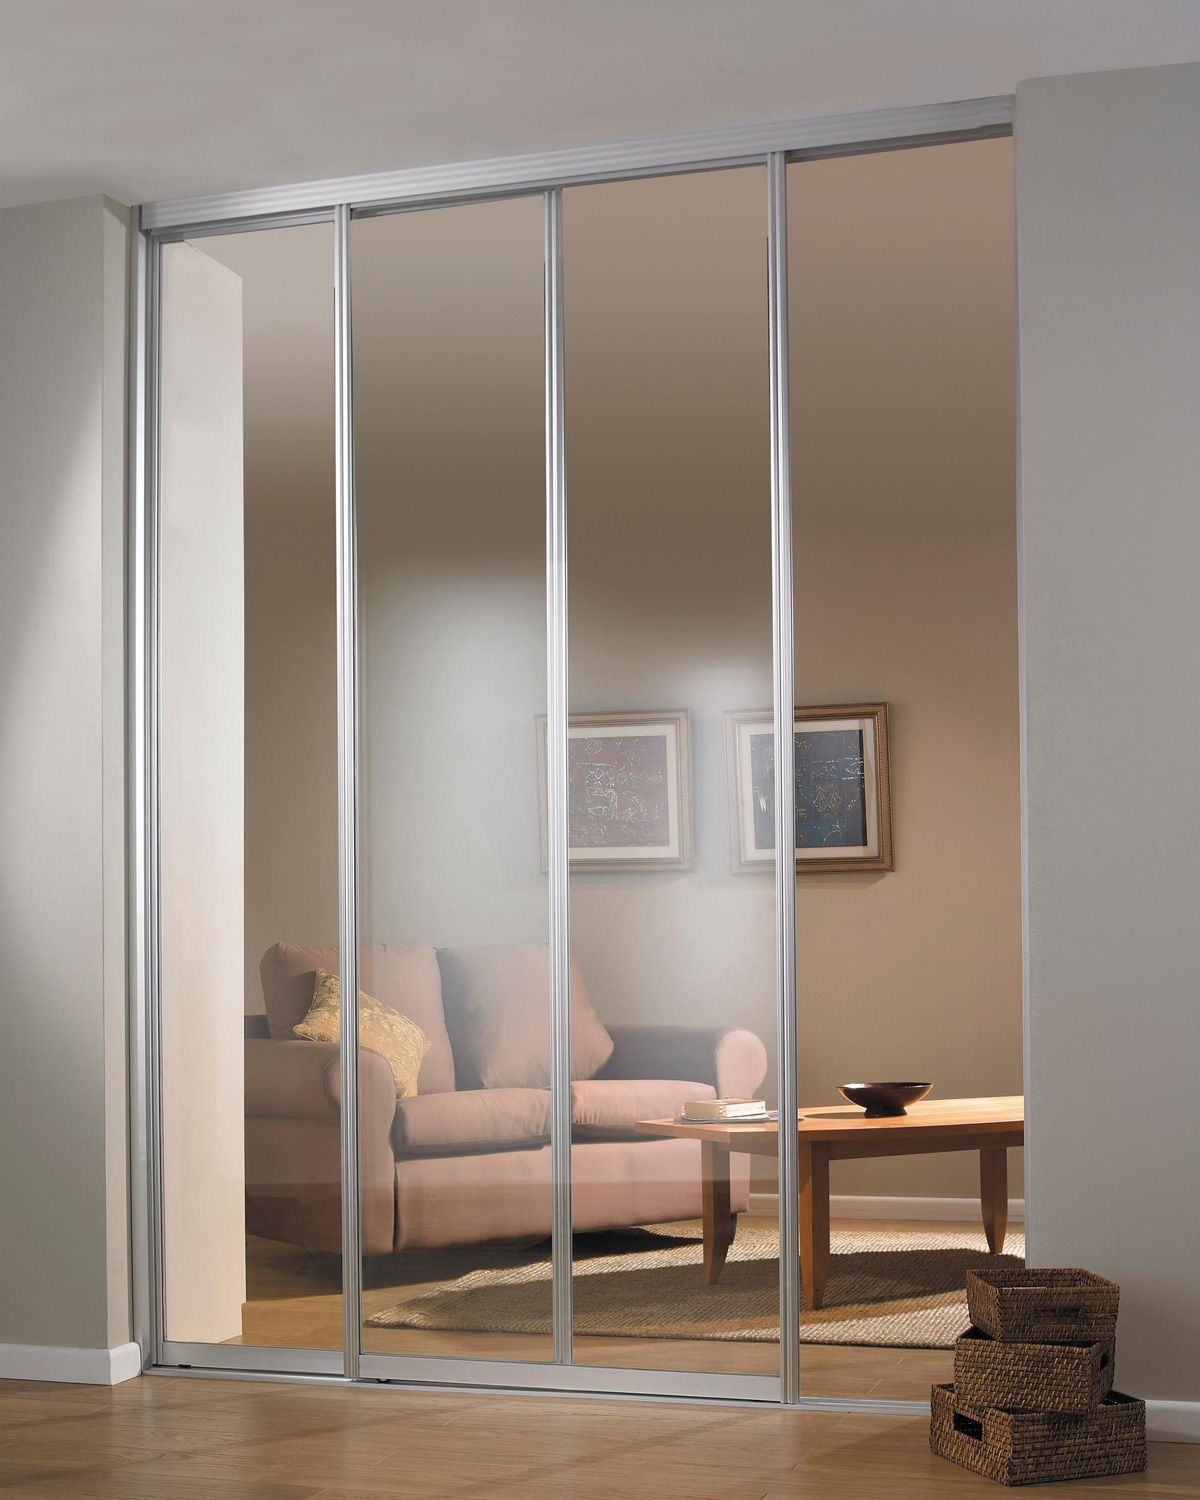 Modern Style Full Lite Clear Glass In Aluminium Agreeable Sliding Room Dividers For Studio Apartments DividersDividers RoomsDecorative